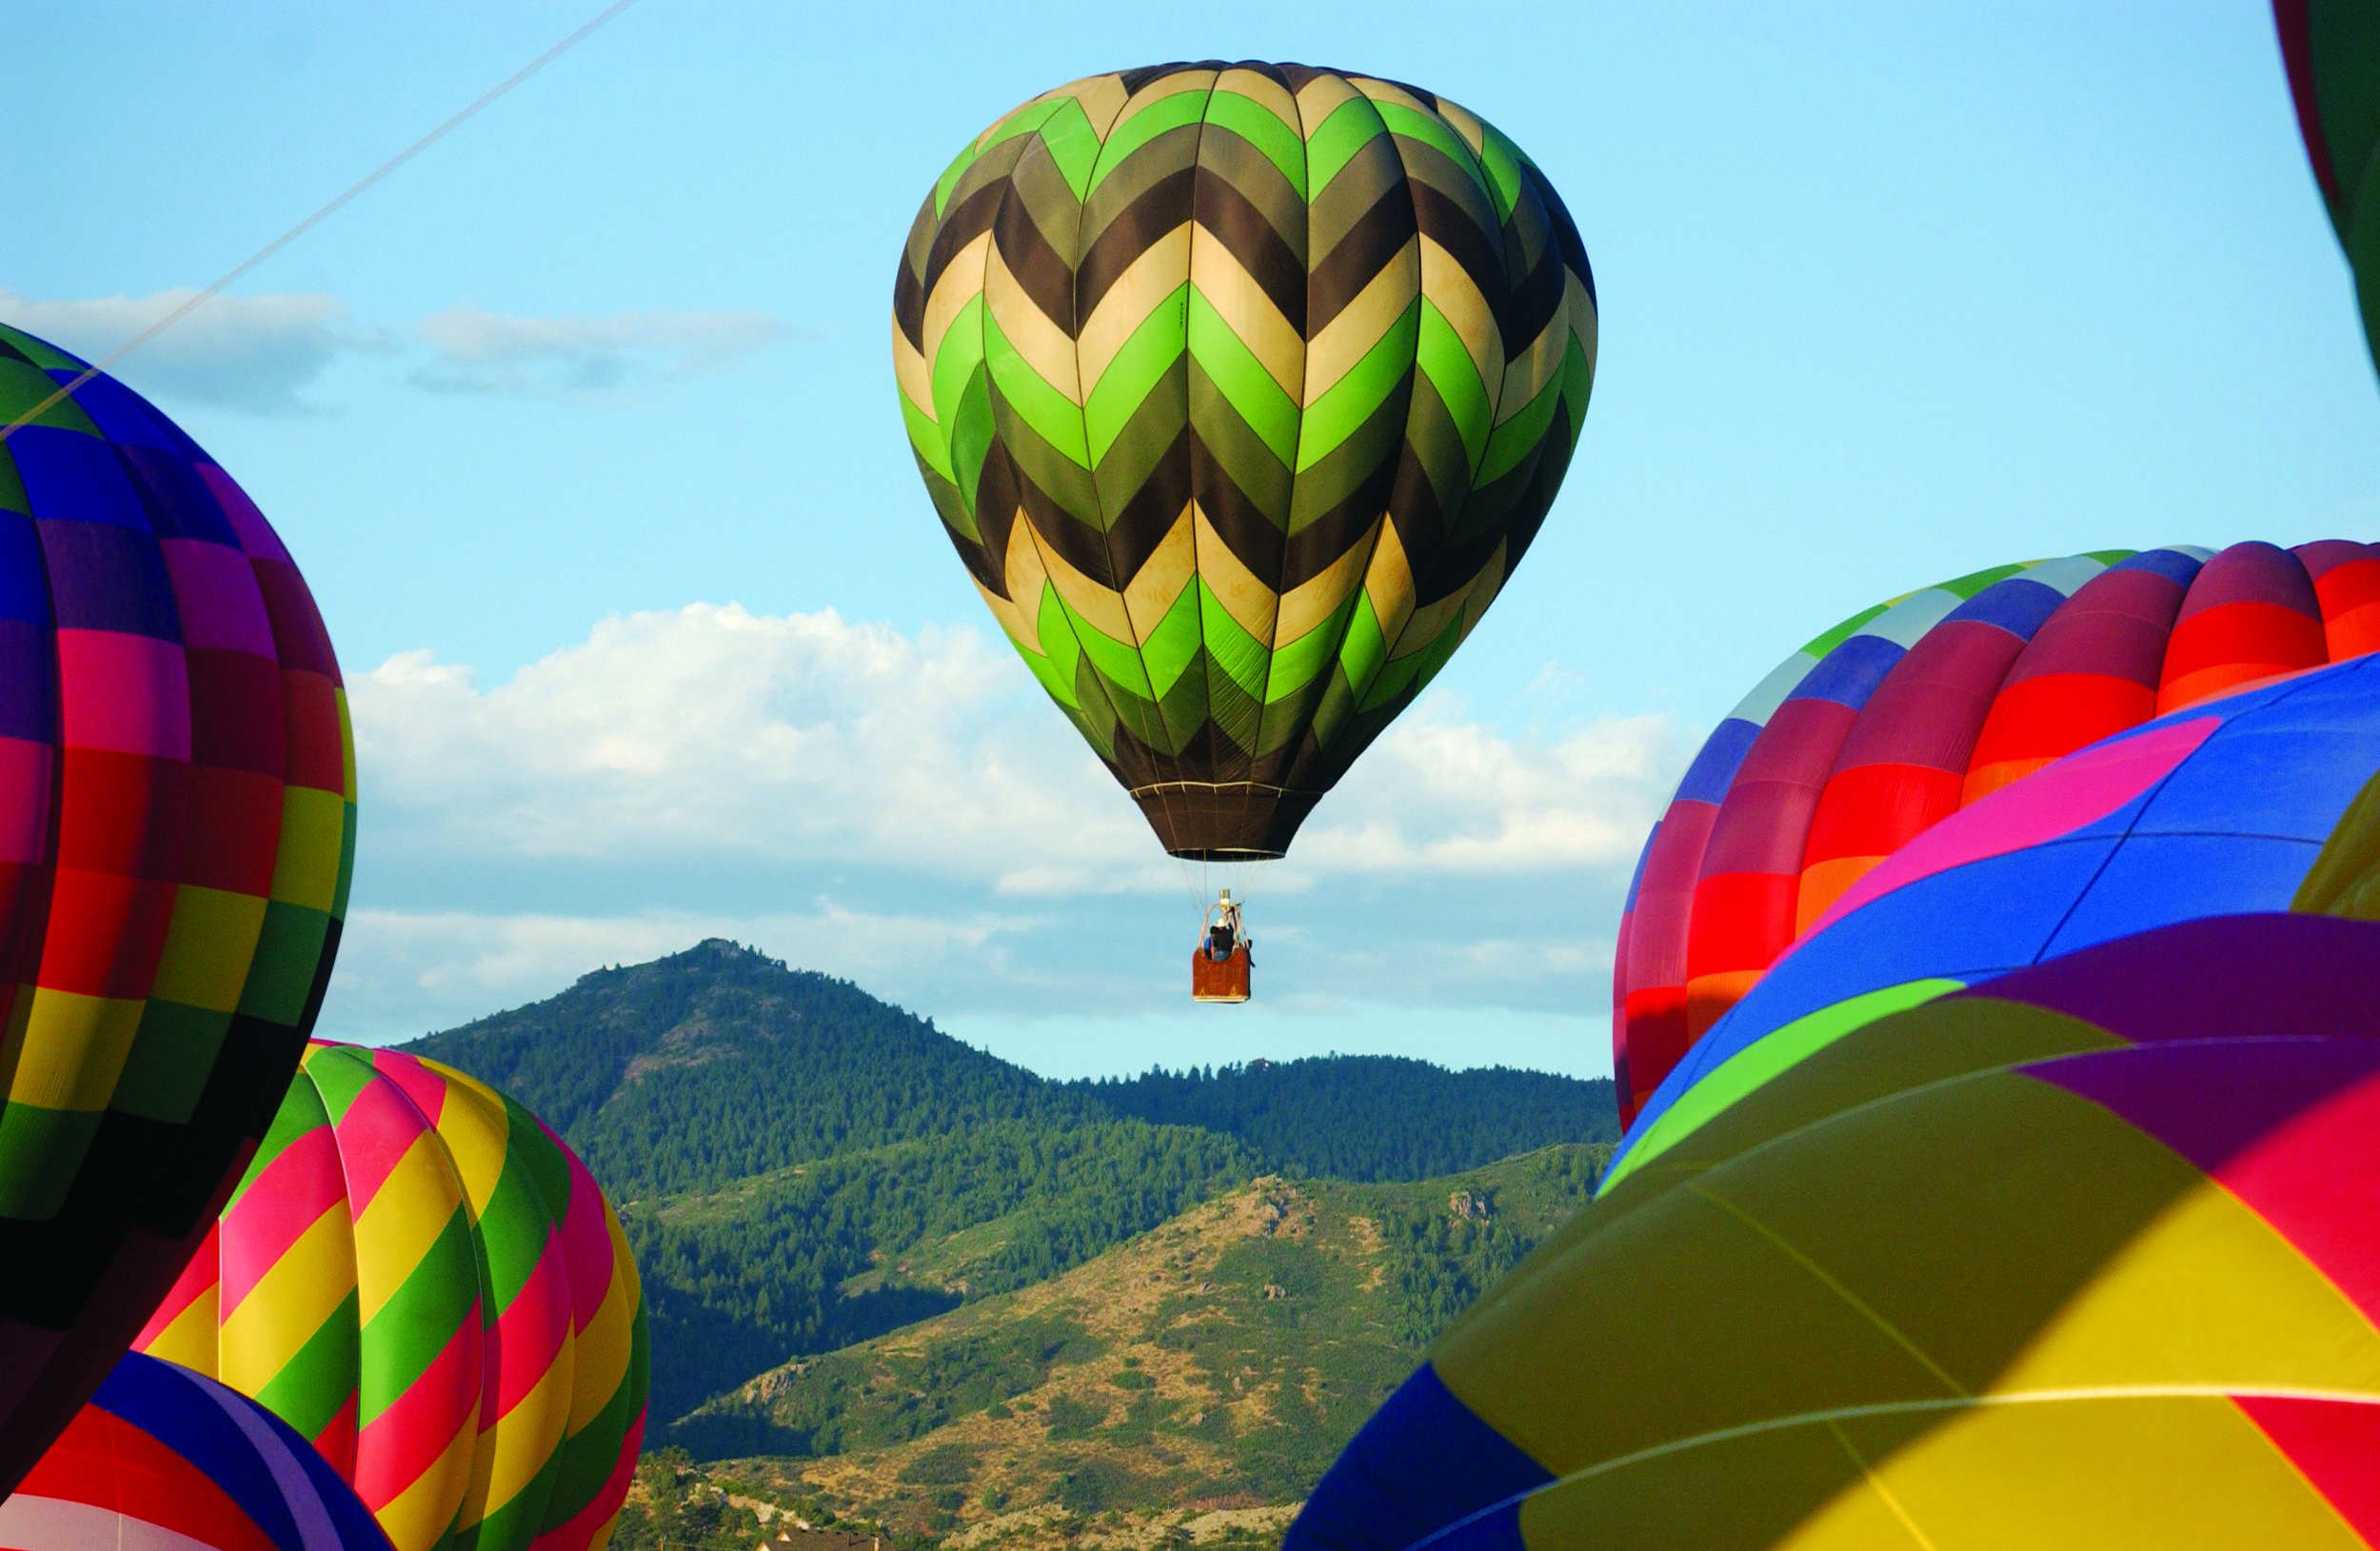 Balloons take flight at Chatfield State Park. Photo: Tom Cooper